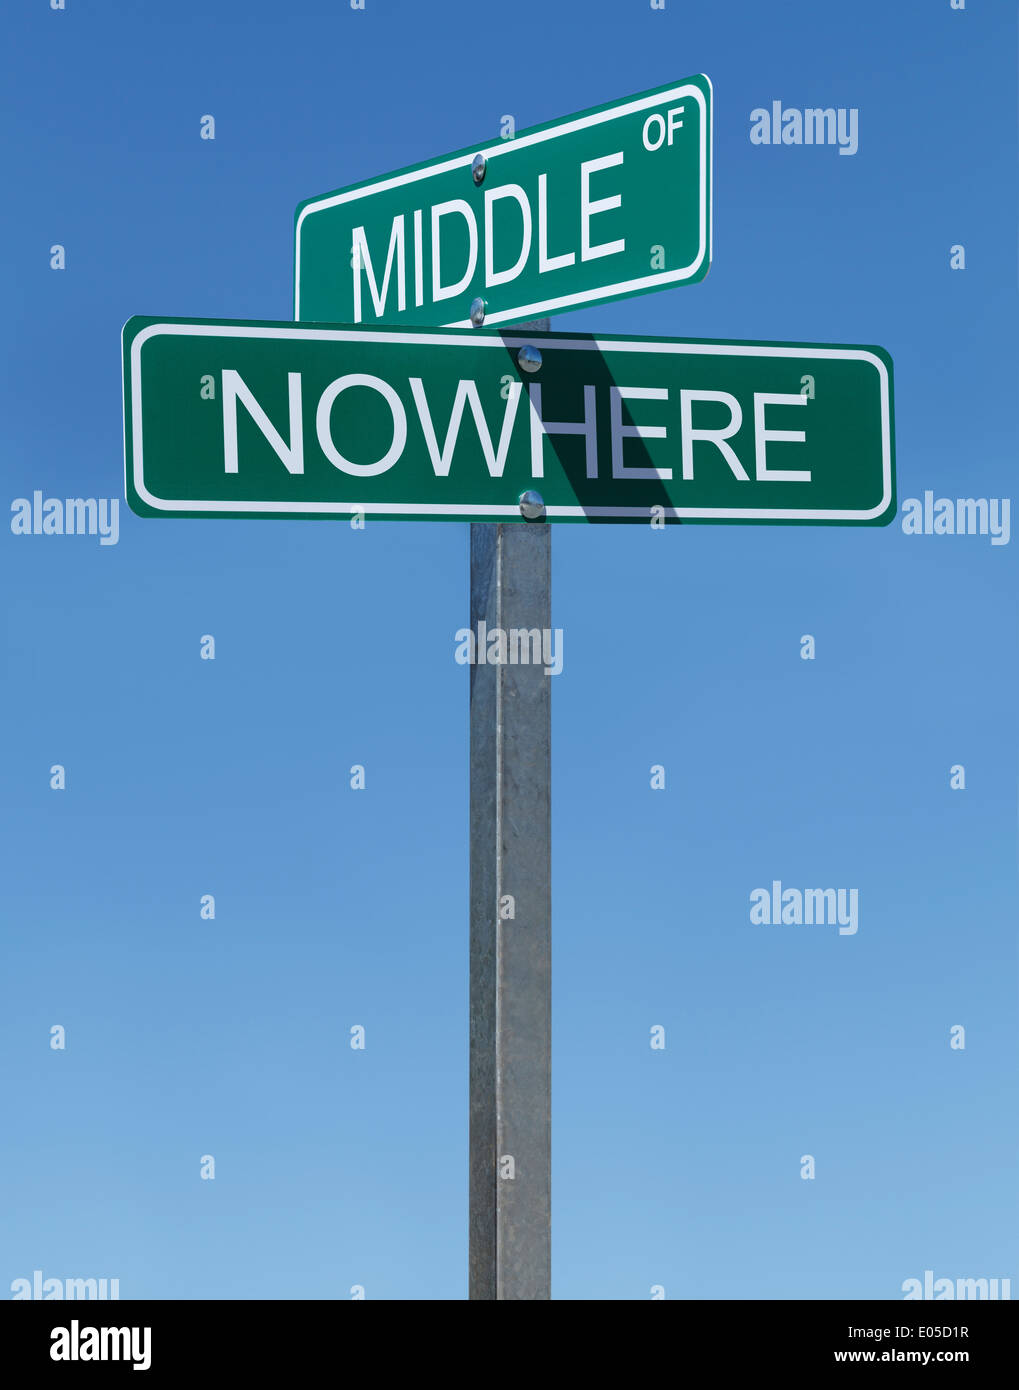 Two Green Street Signs Middle of Nowhere on a Metal Pole with Blue Sky Background. - Stock Image